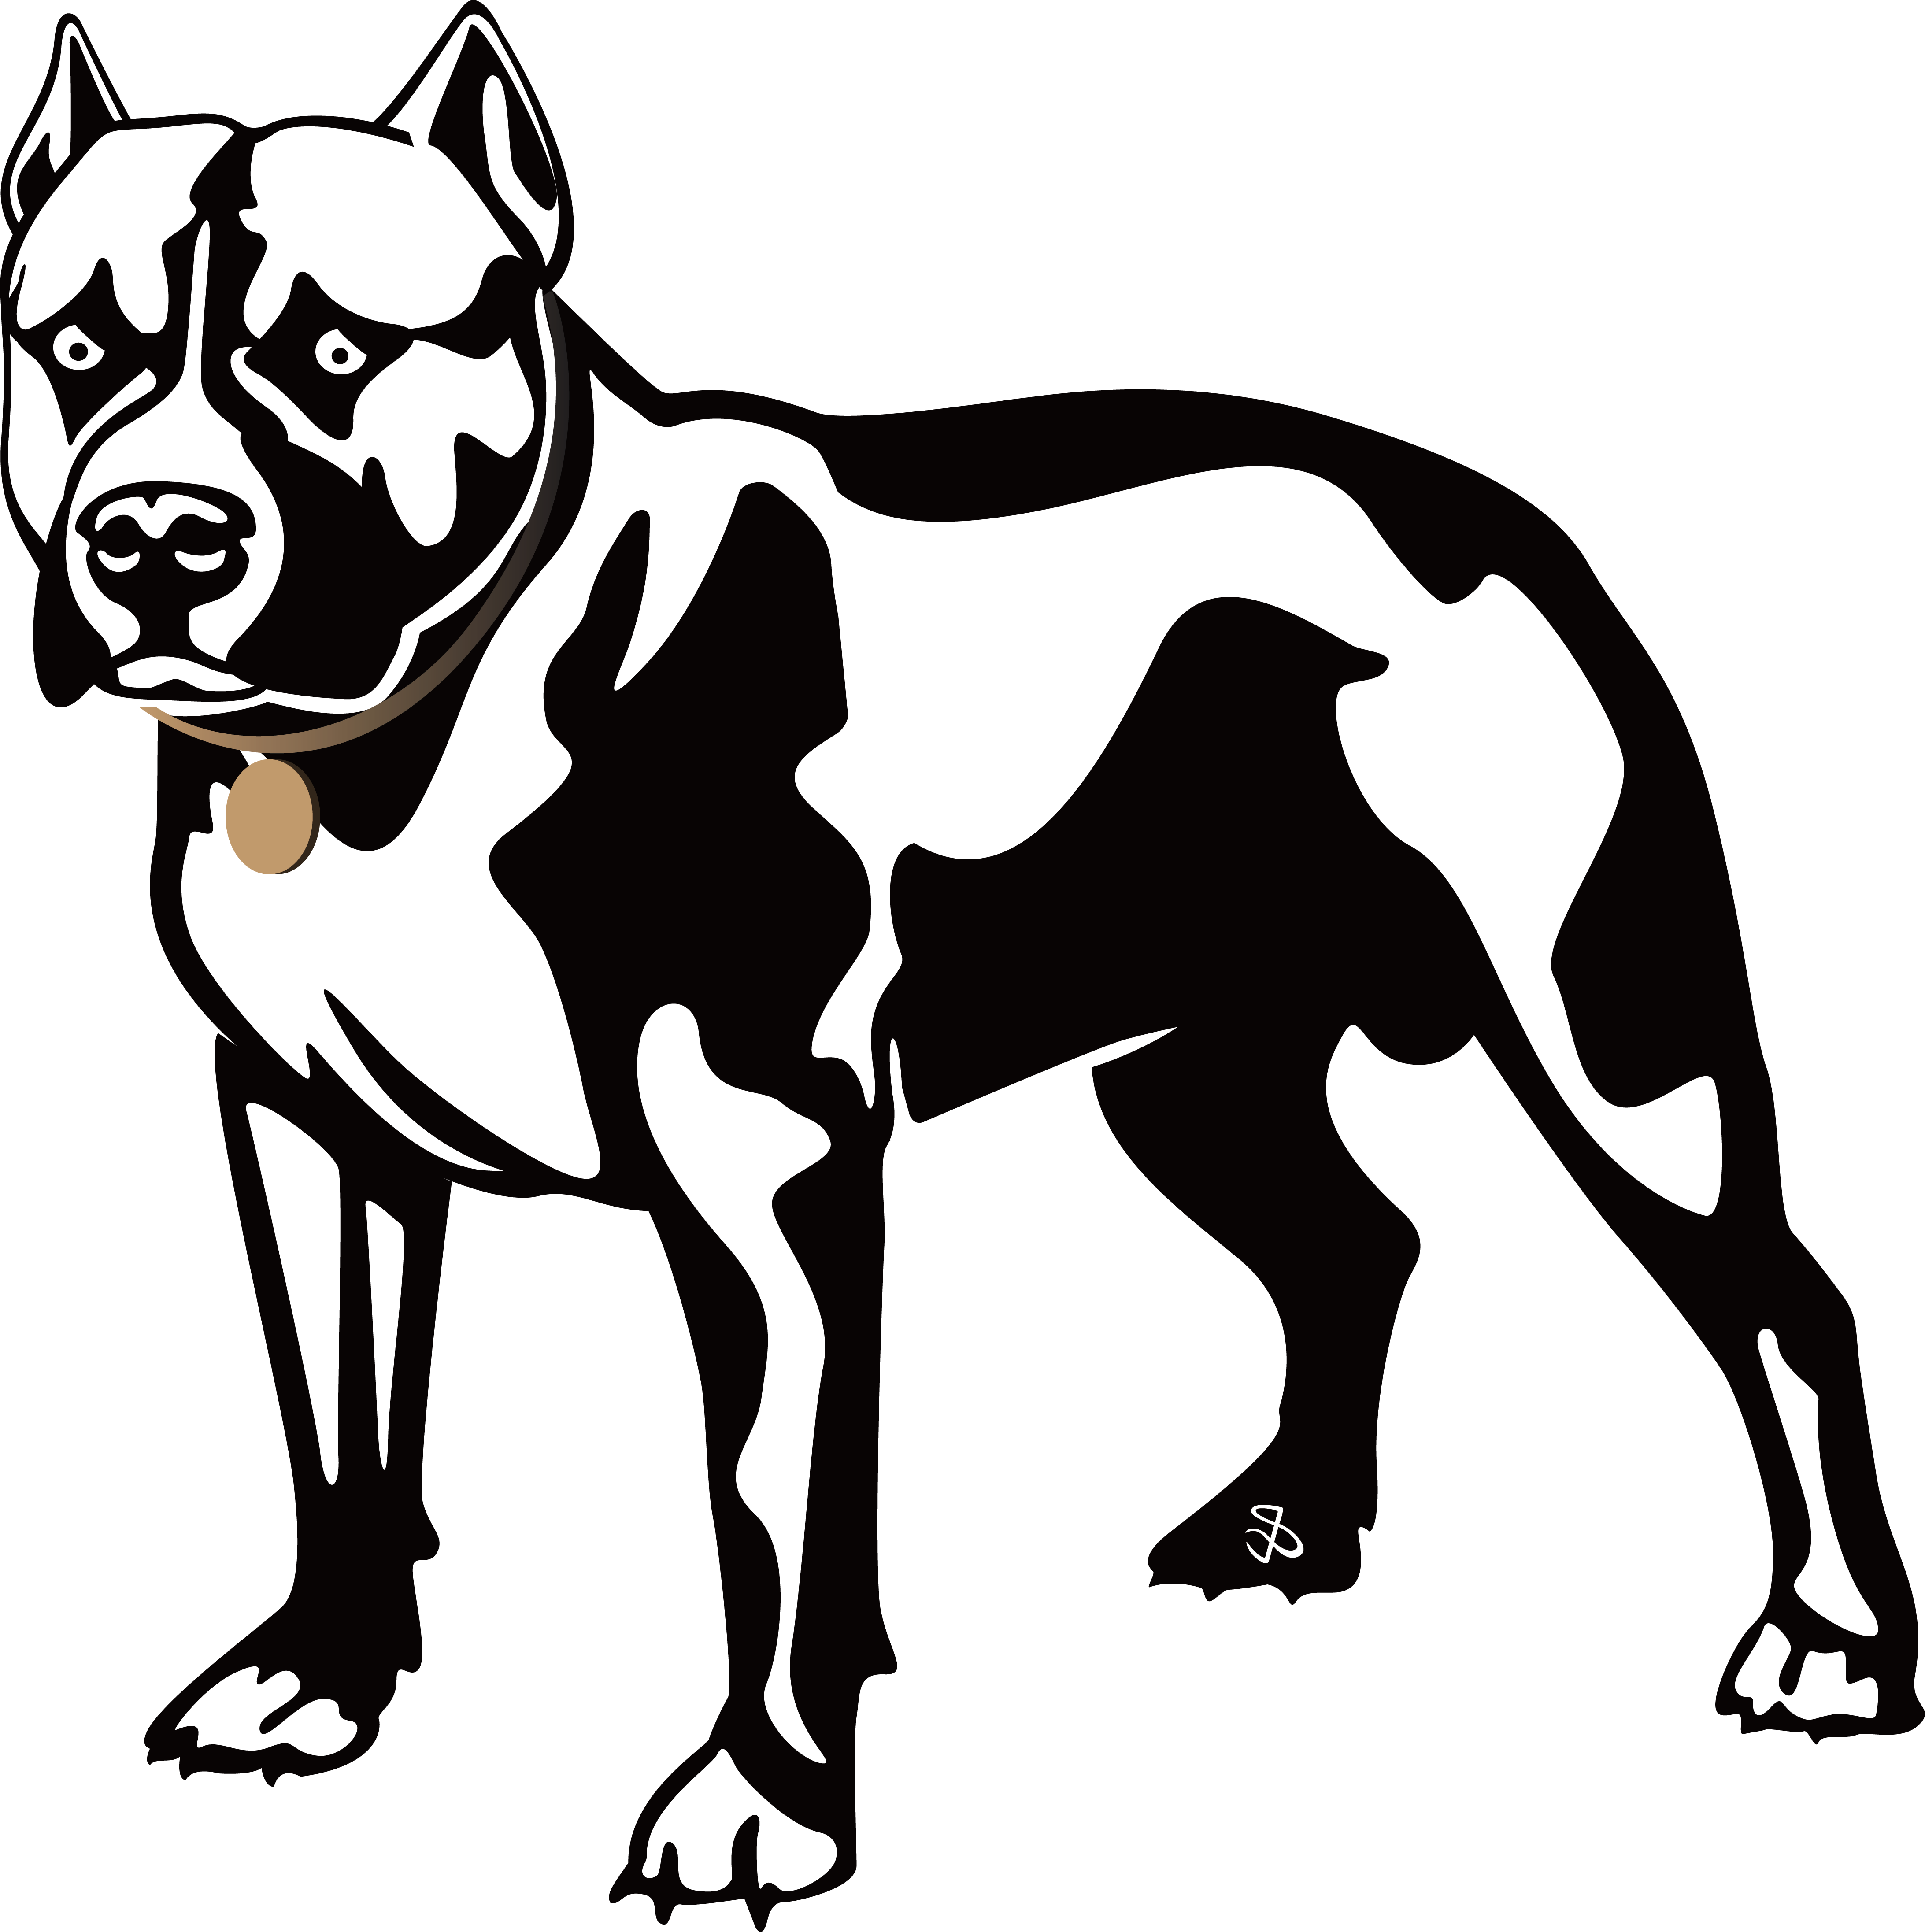 Pitbull clipart loyal dog, Pitbull loyal dog Transparent.